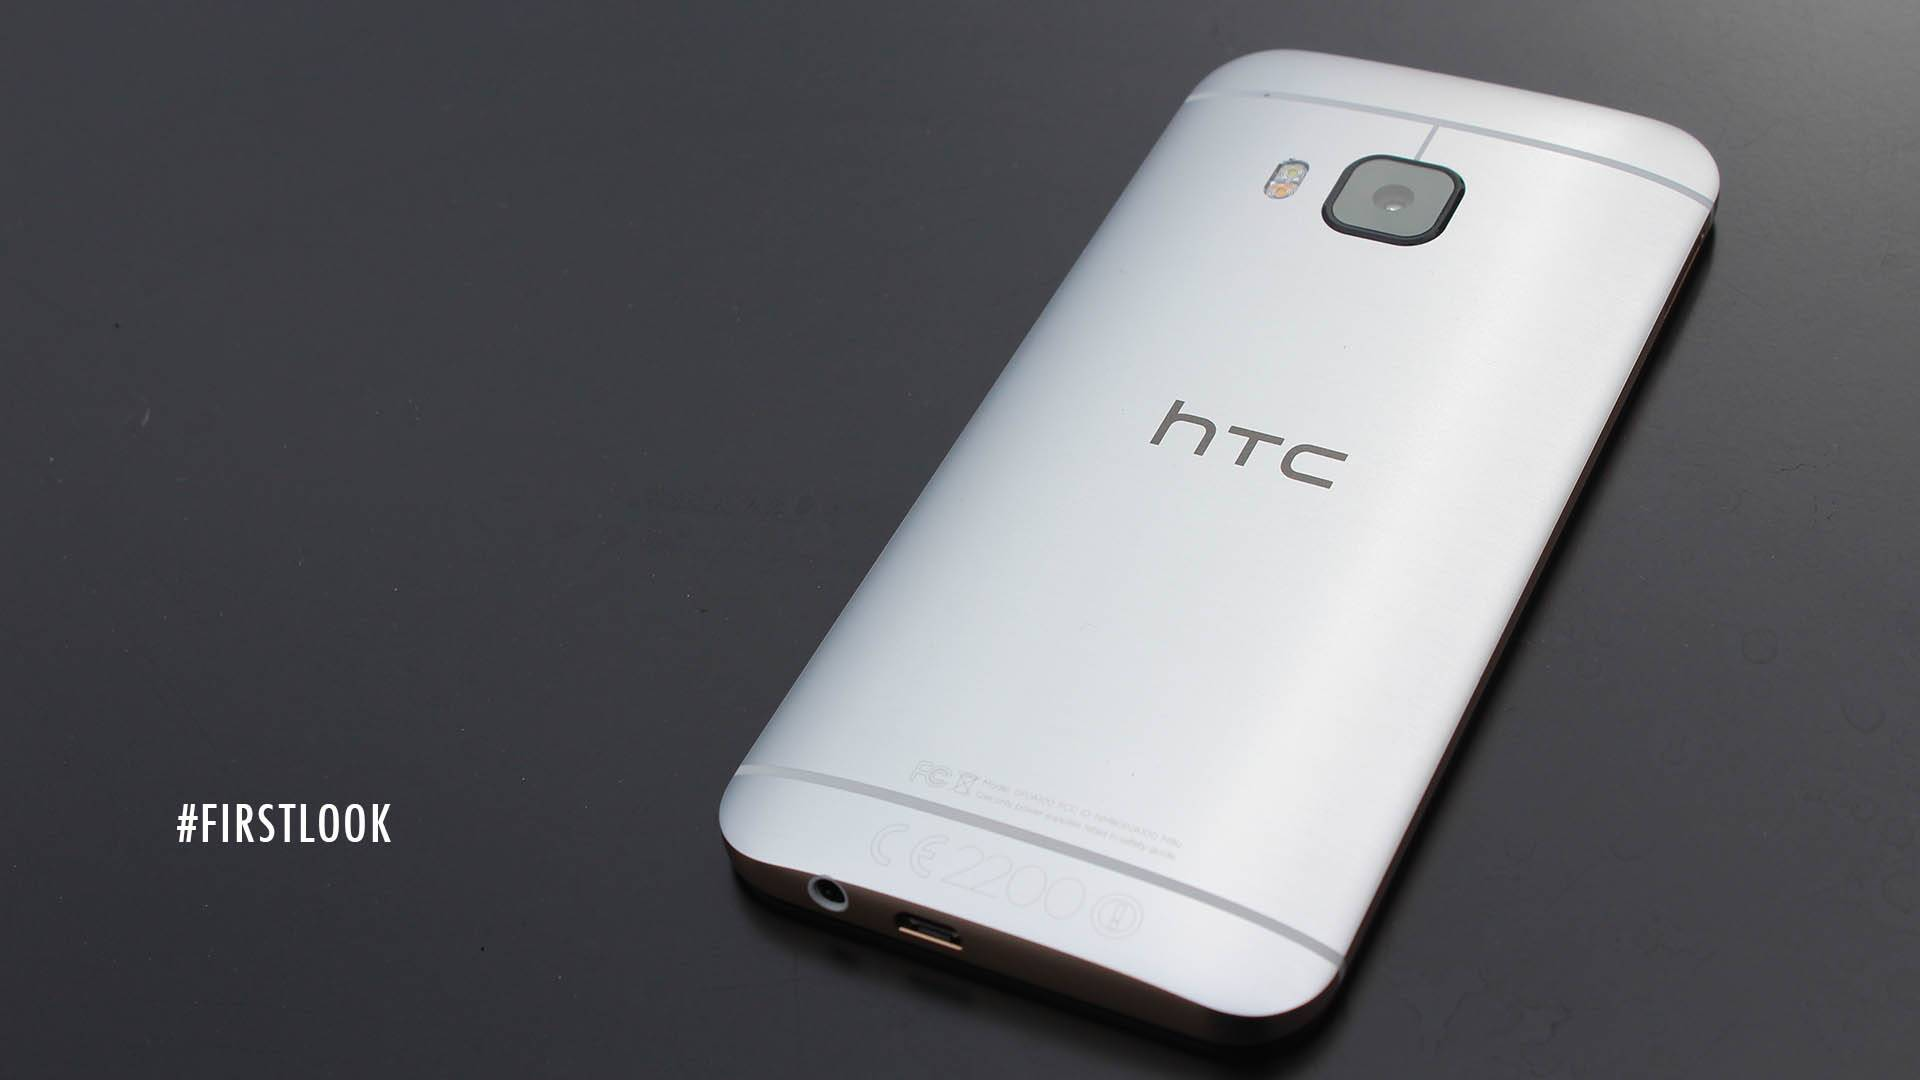 First look of HTC One M9